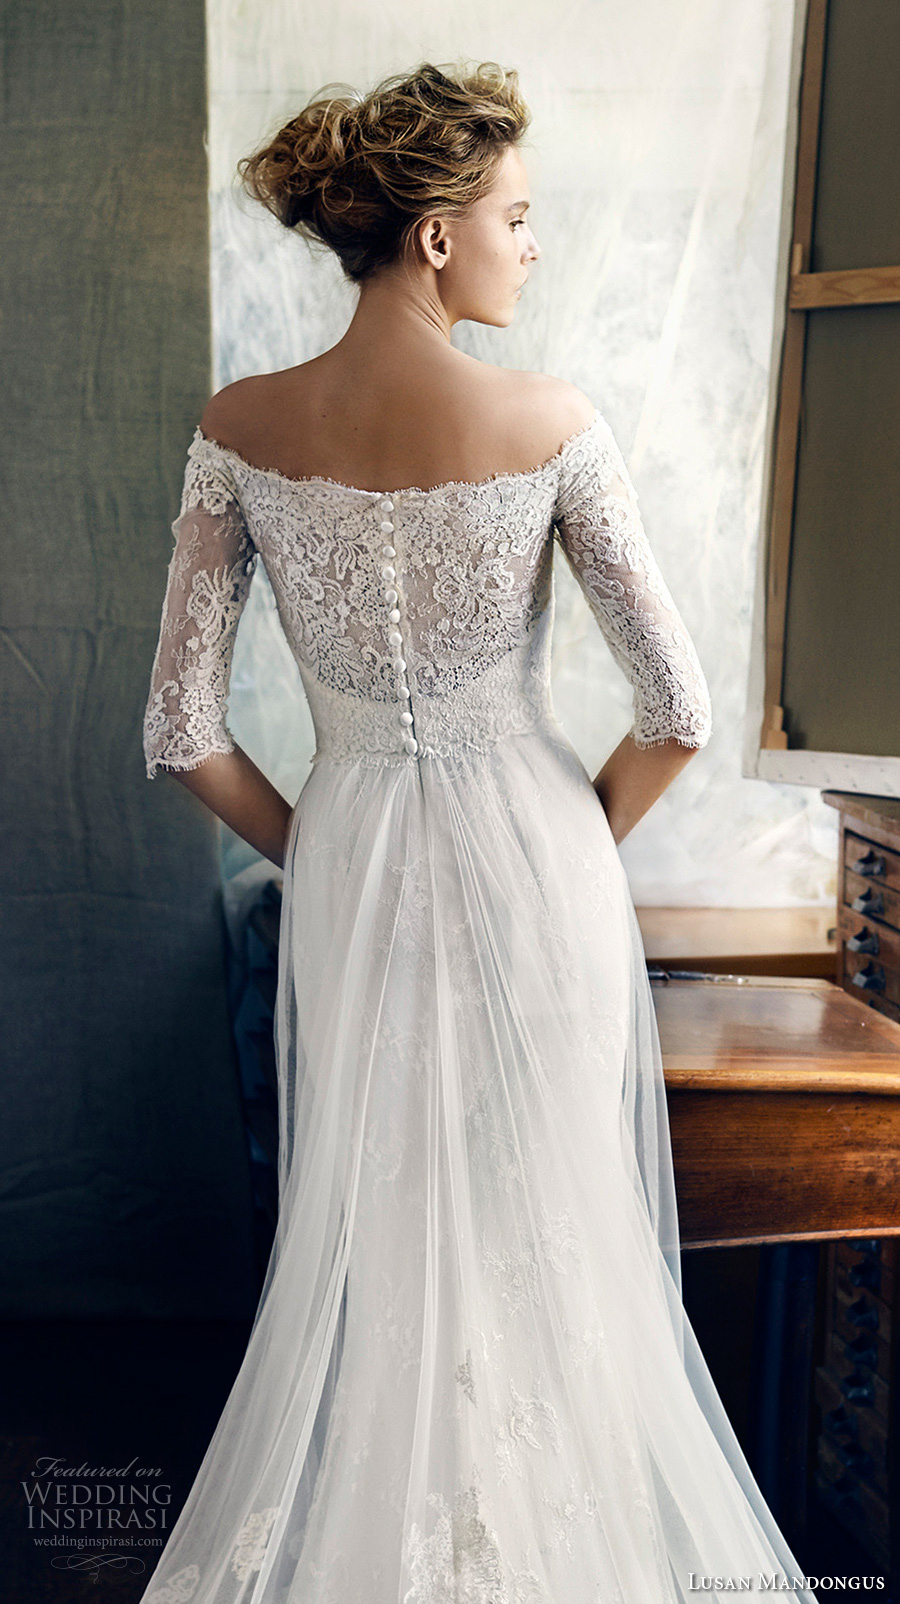 lusan mandongus 2017 bridal half sleeves off the shoulder illusion straight across sweetheart neckline heavily embellished bodice romantic covered lace back chapel train (zeta) zbv